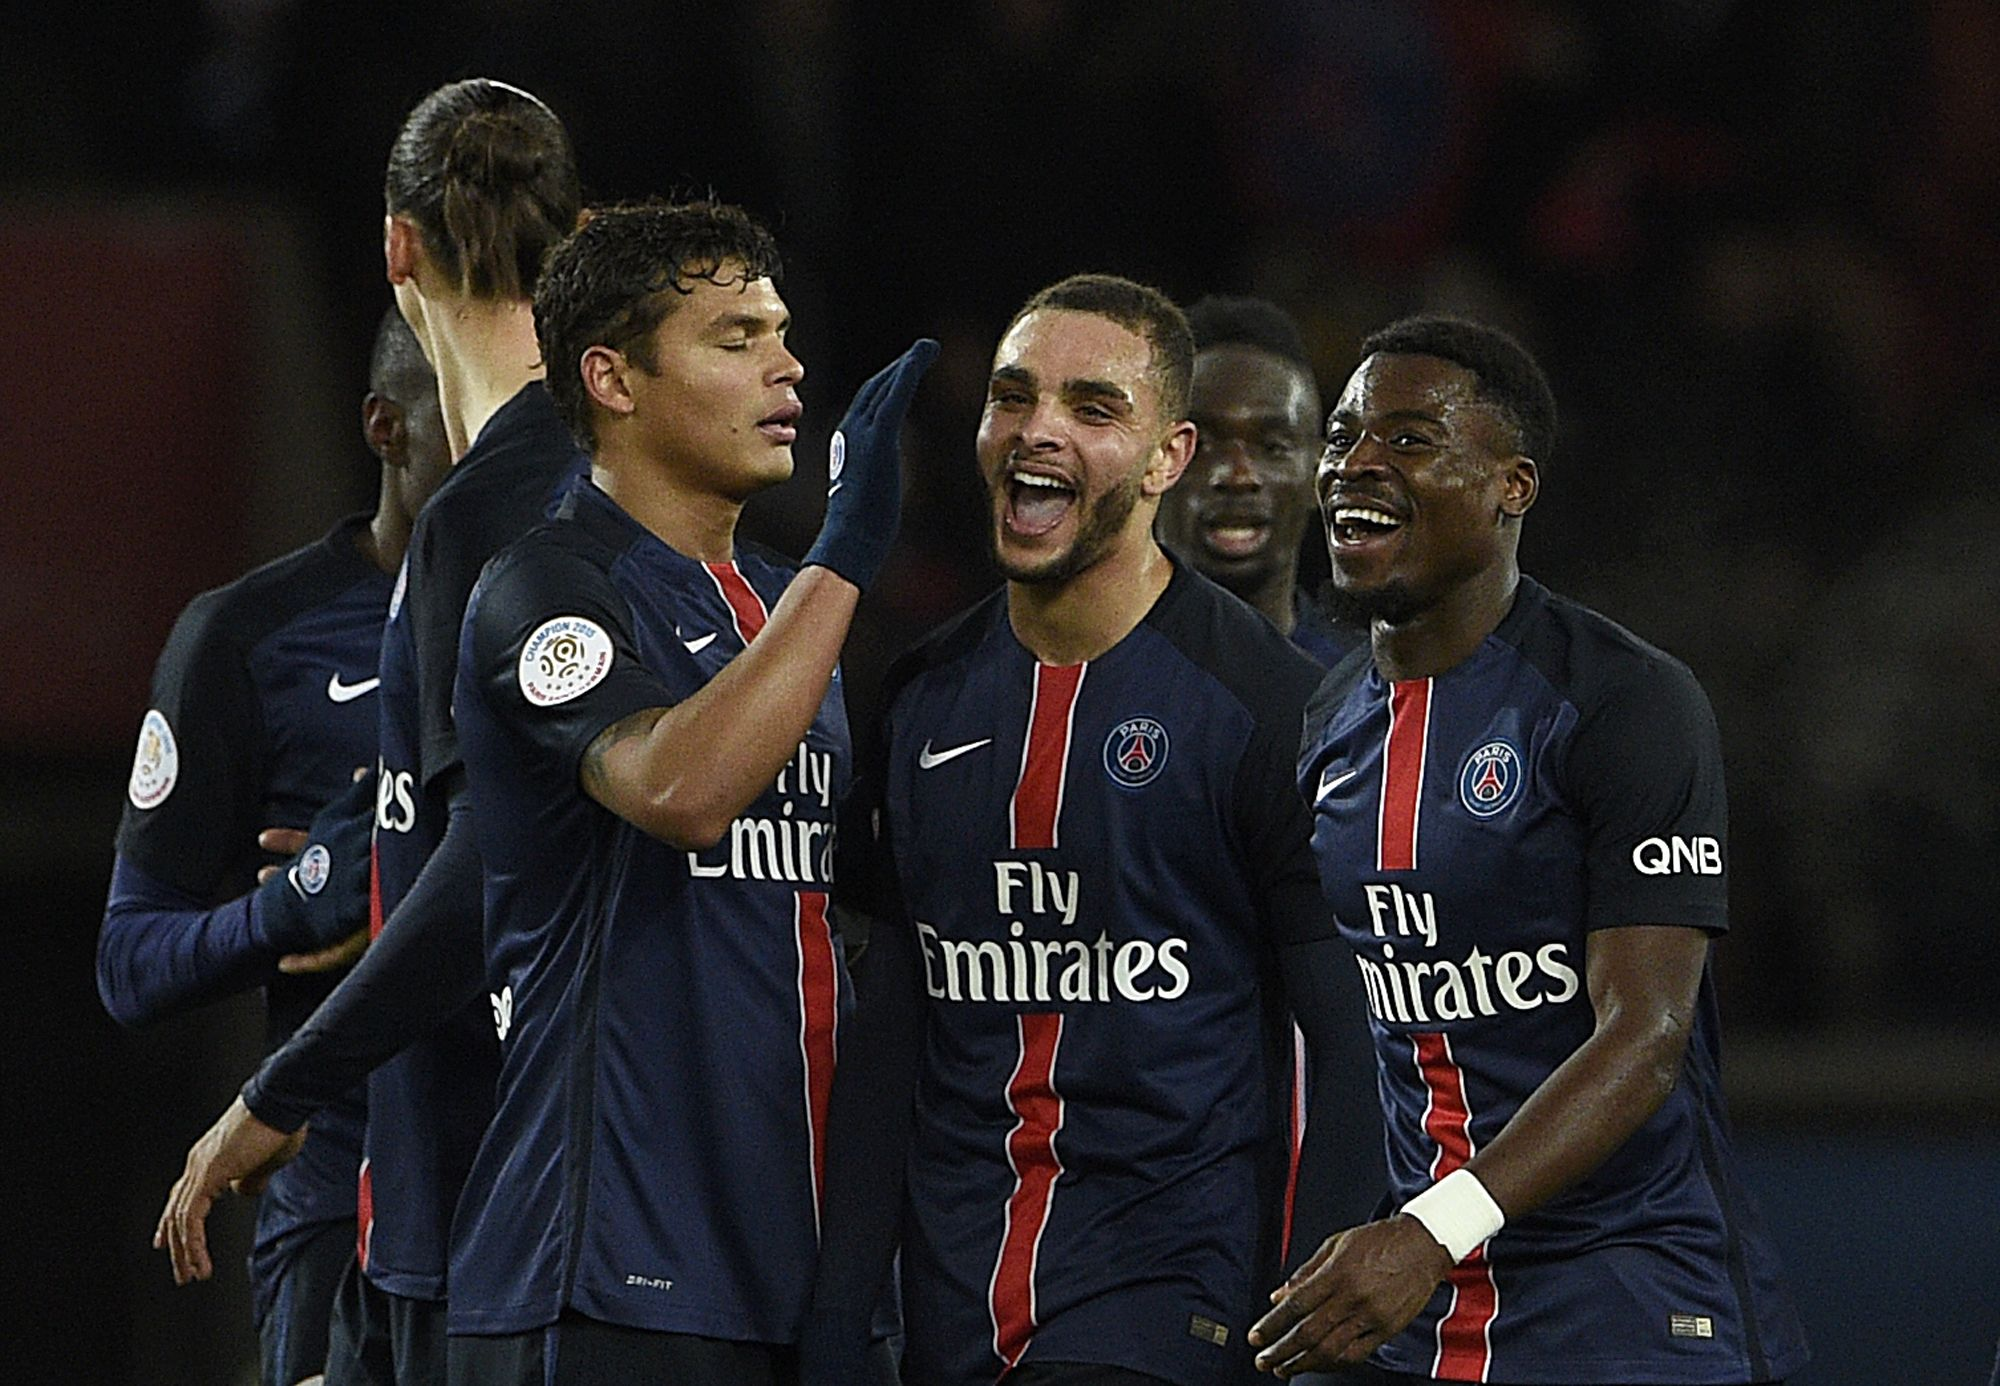 Paris Saint-Germain players at Parc des Princes stadium, February 3, 2016.